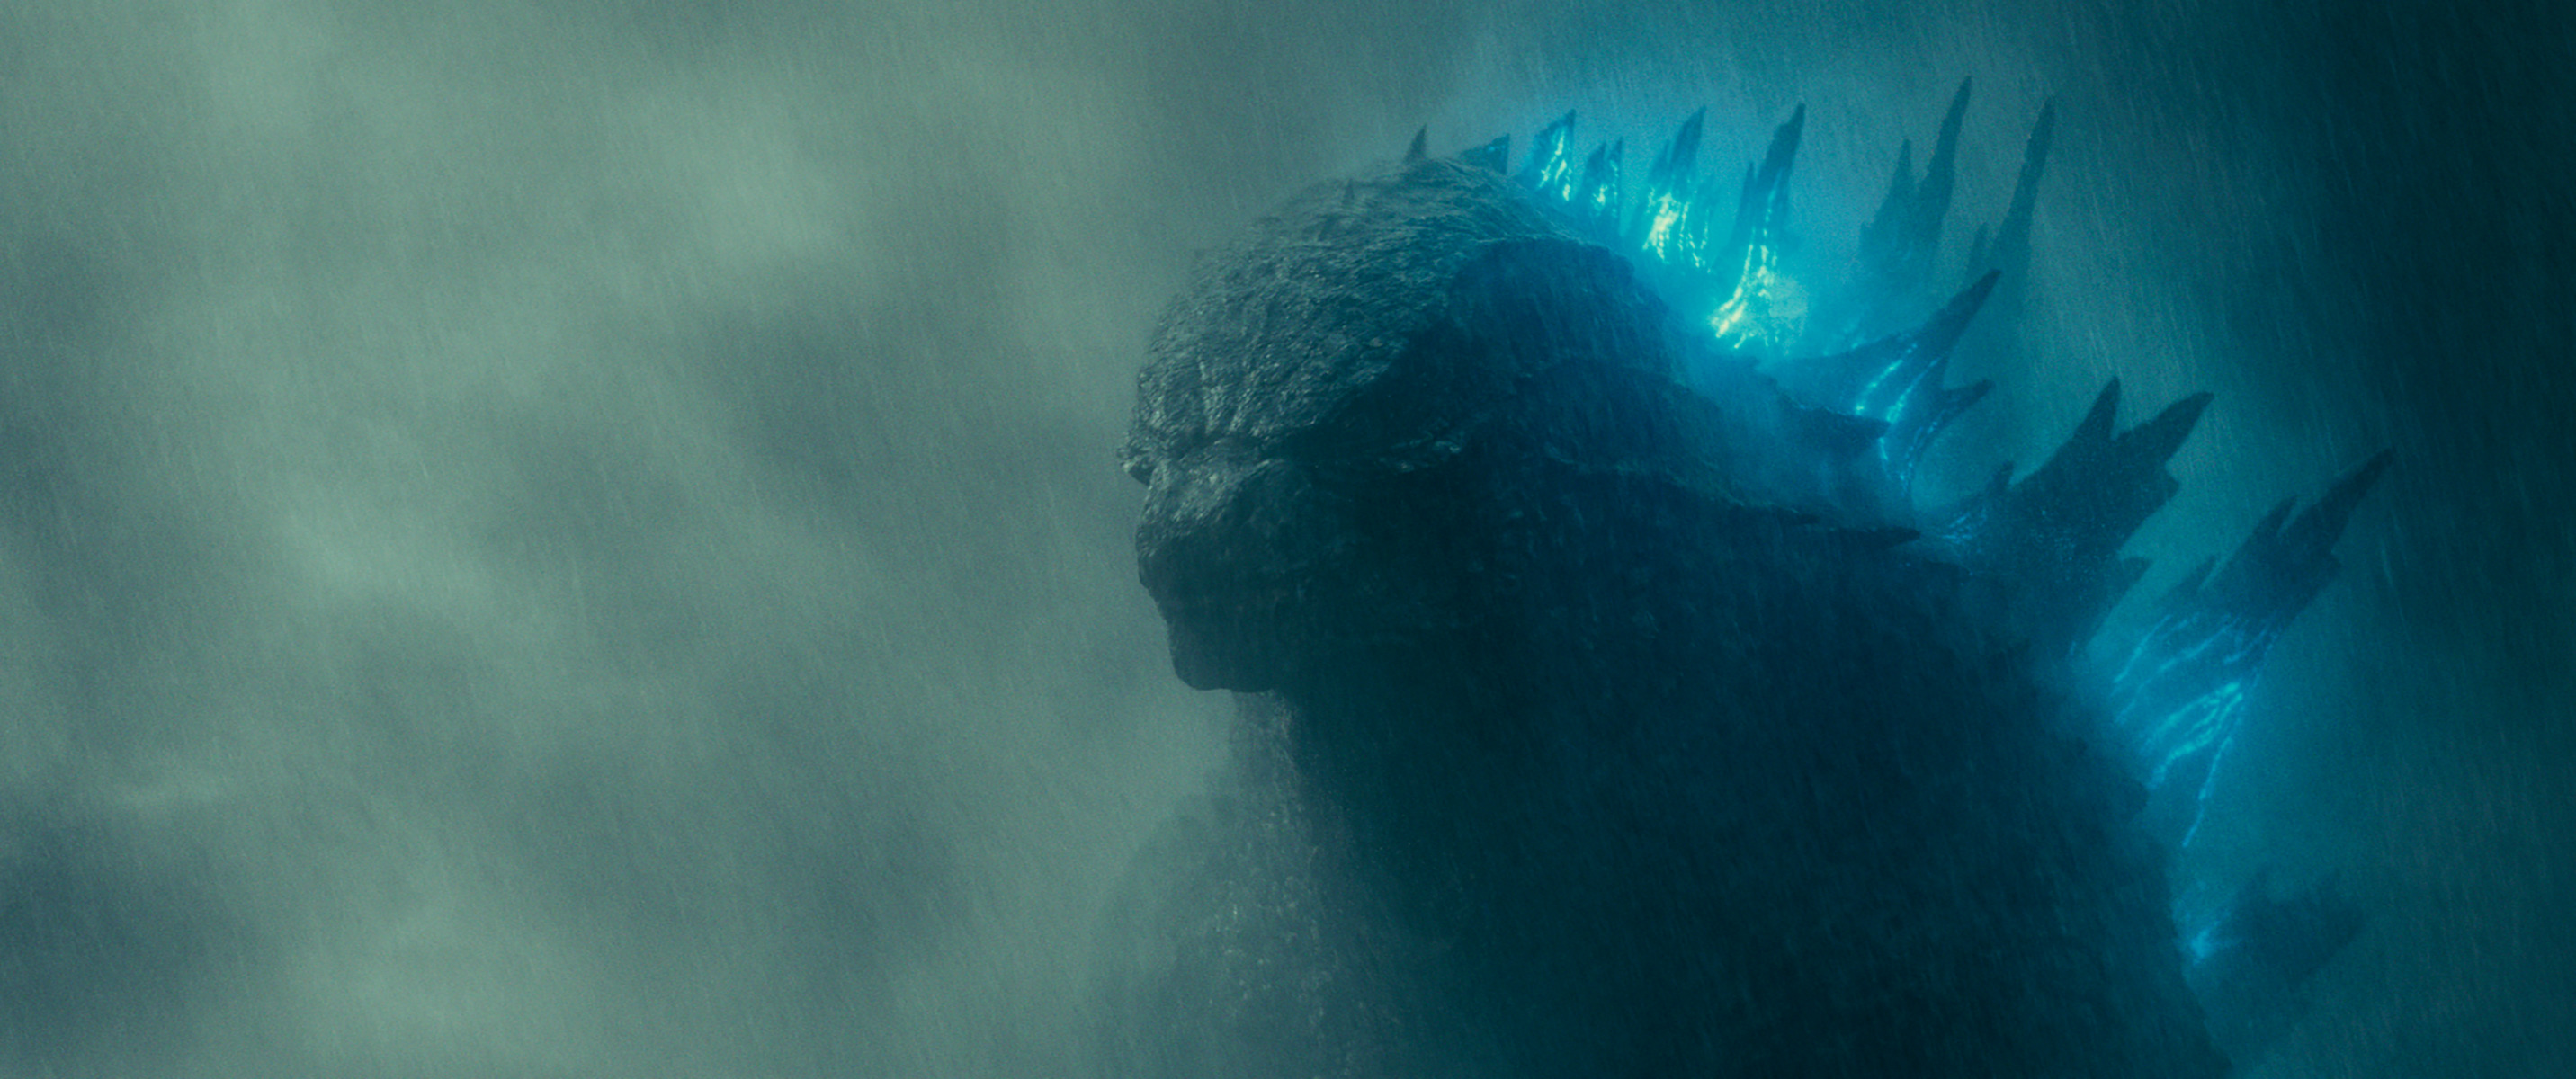 Rezultat iskanja slik za godzilla king of the monsters MOVIE